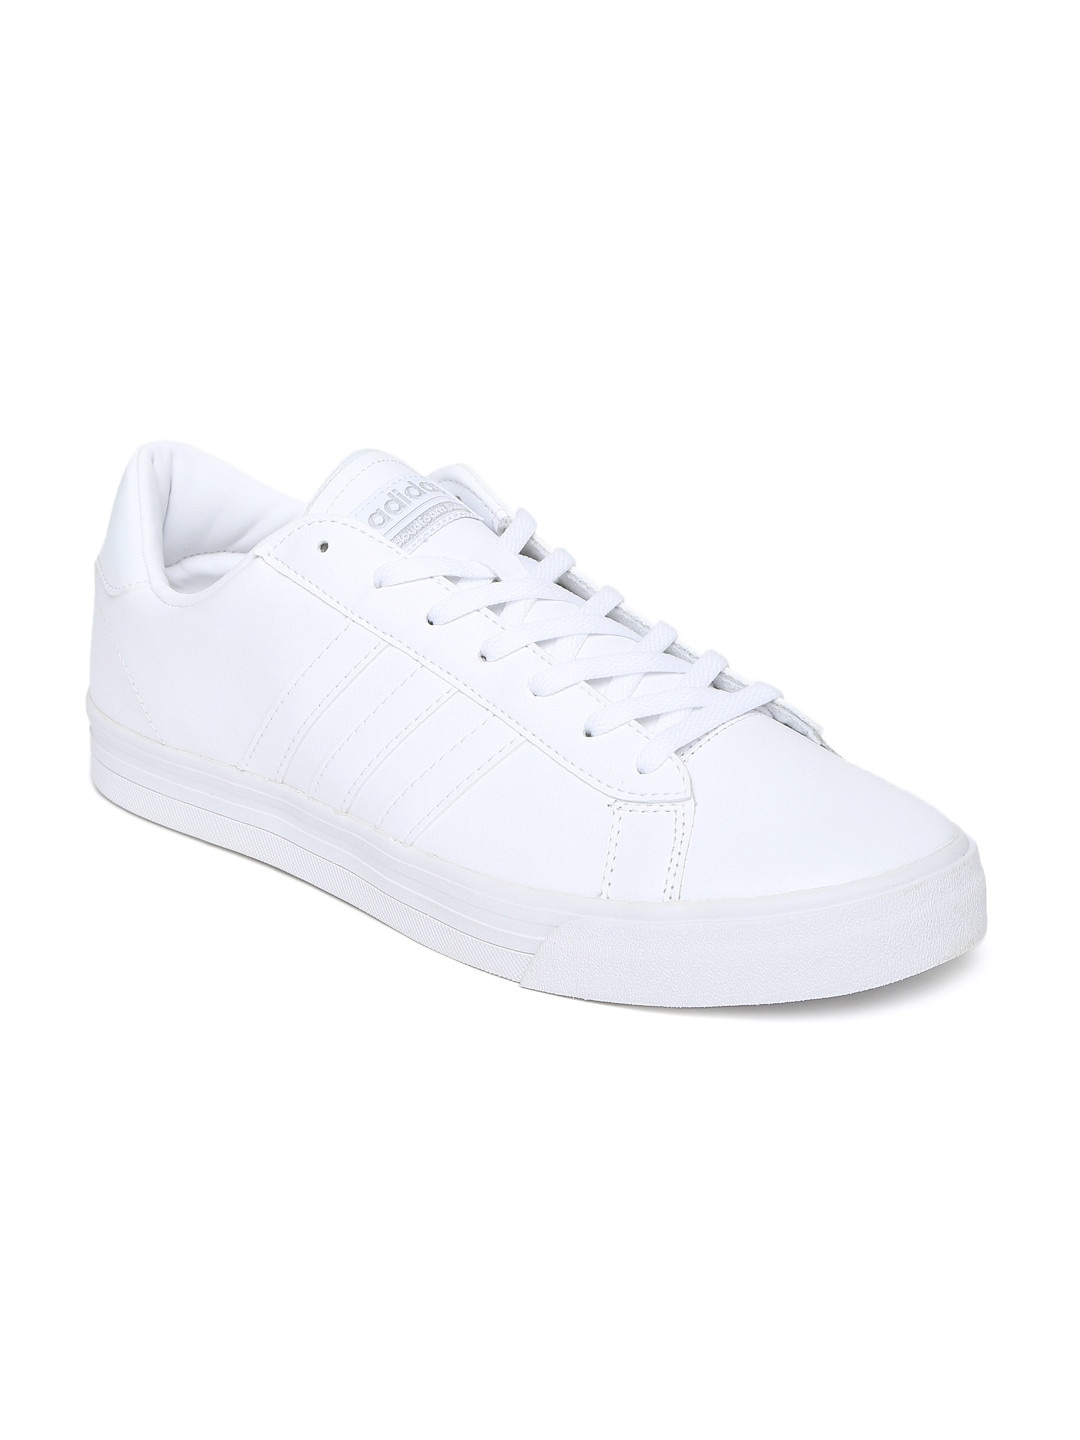 Adidas Neo White Original Fawdingtonbmw Co Uk